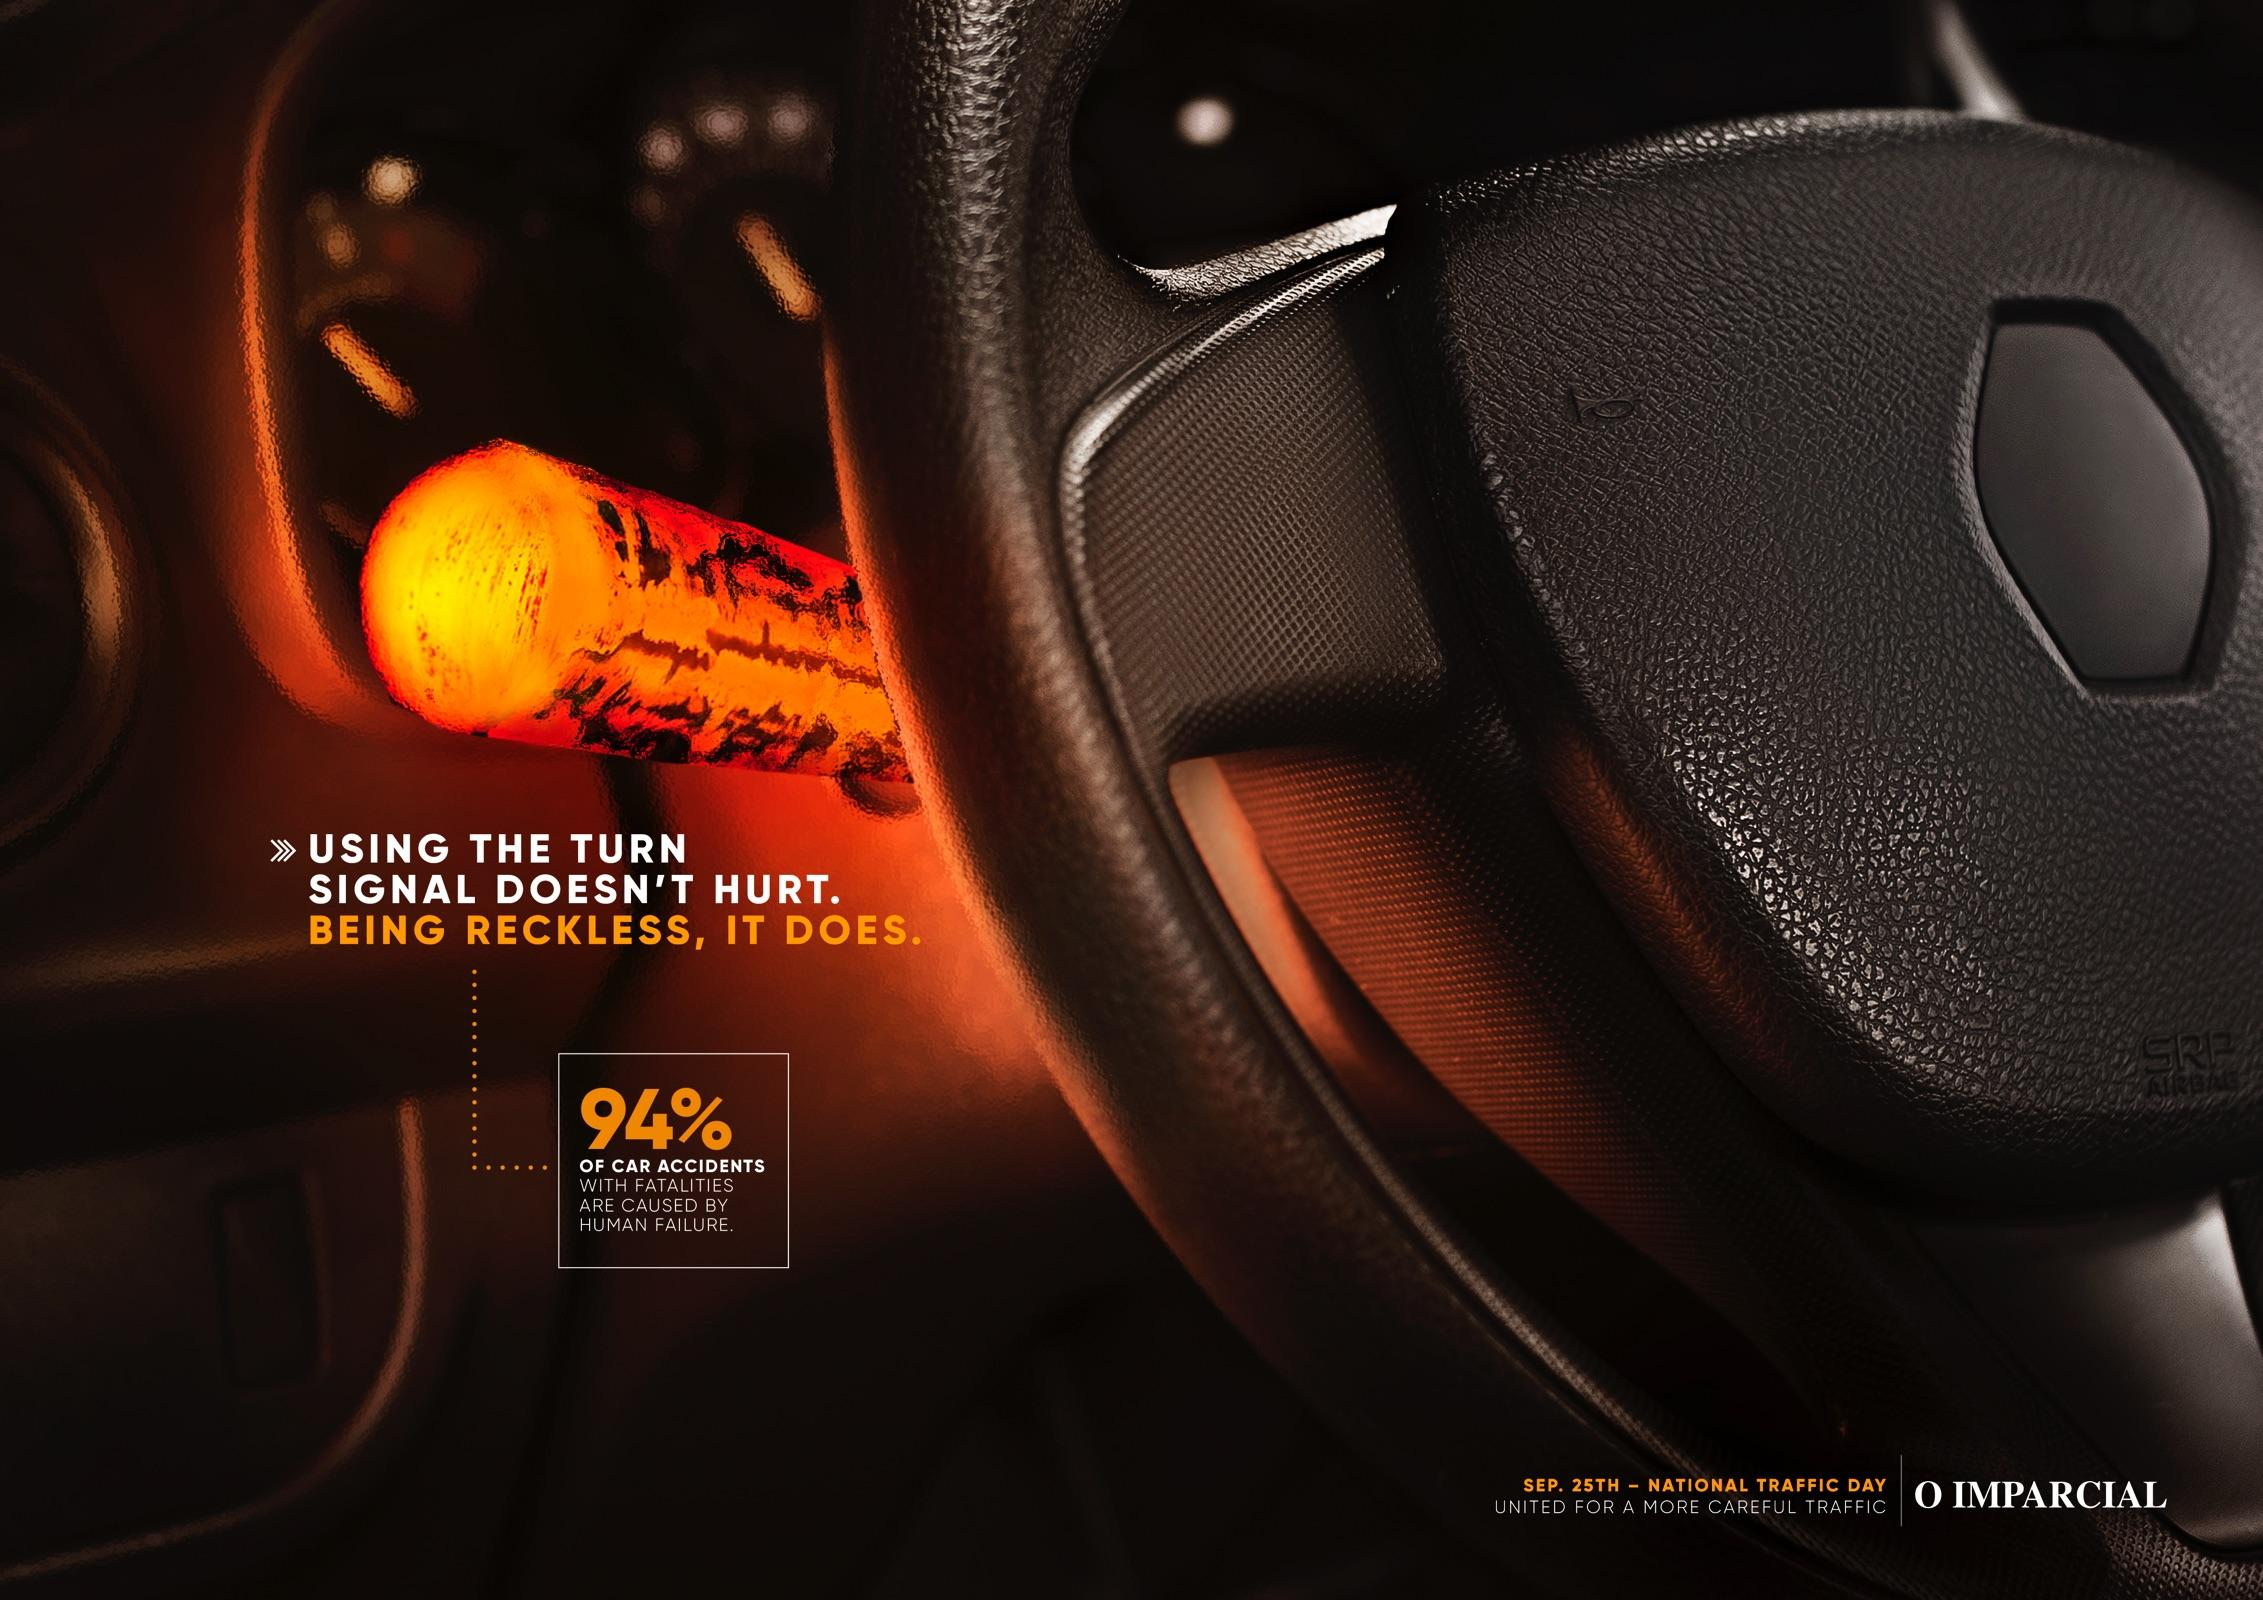 O Imparcial Print Ad - The Turn Signal Doesn't Hurt - Ember